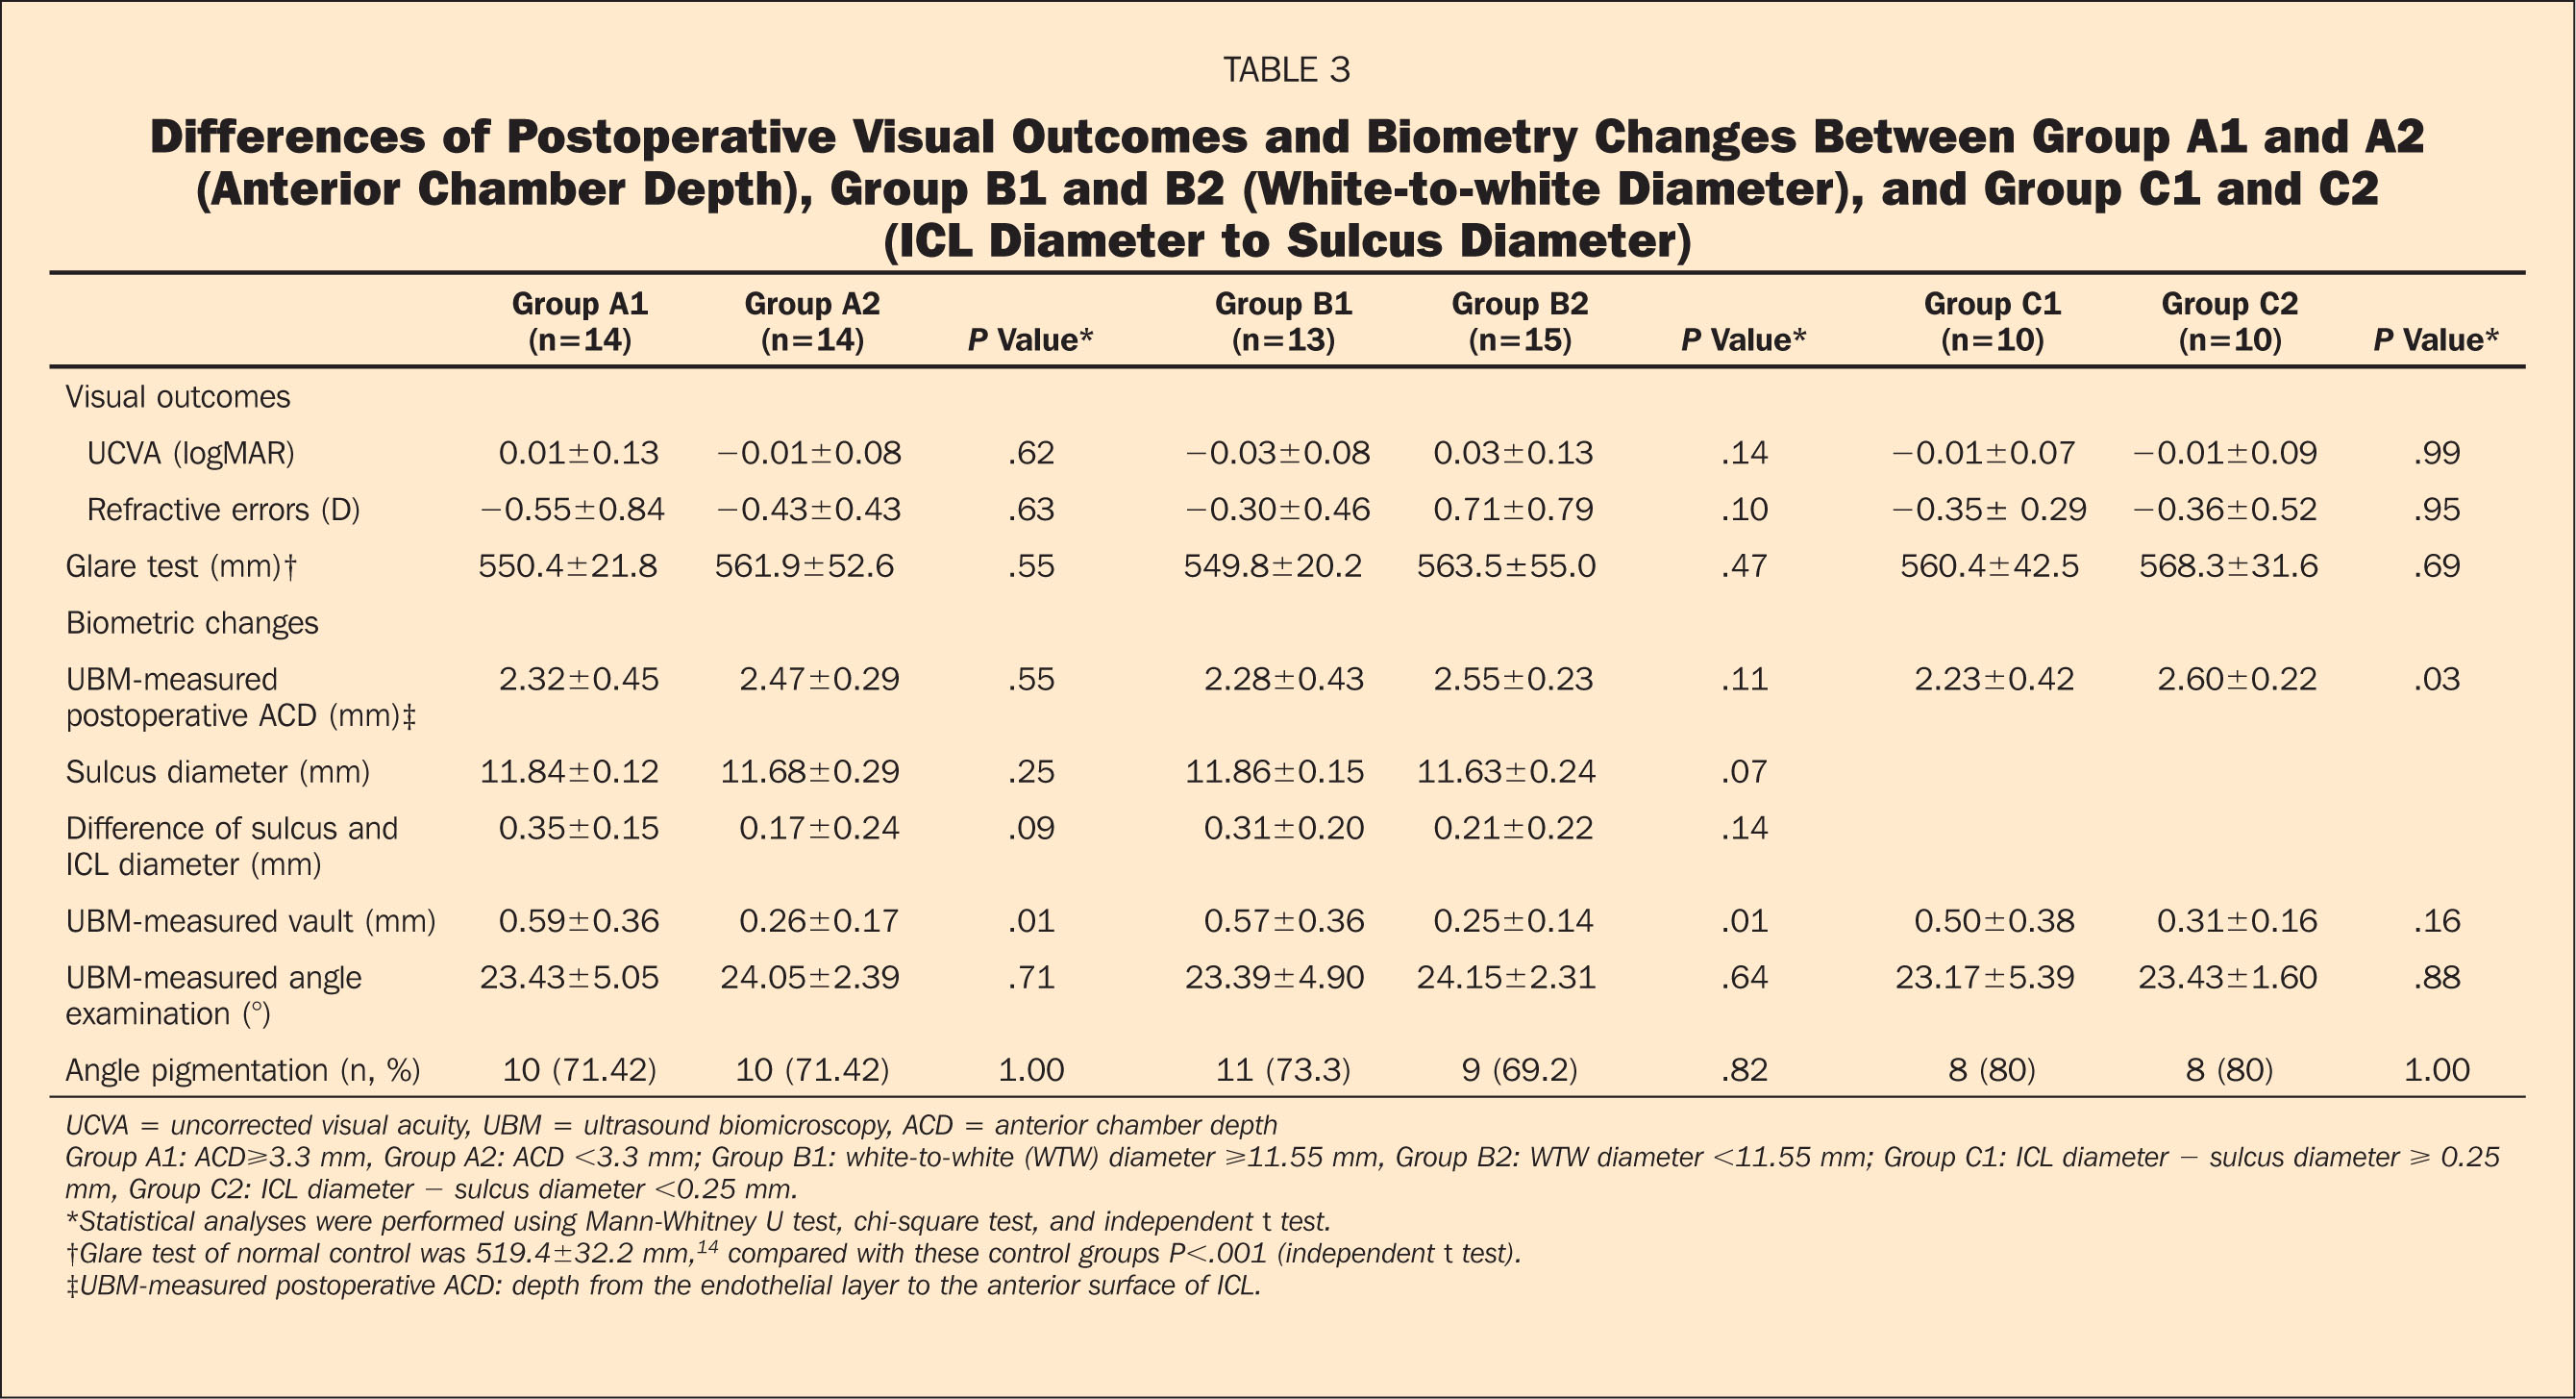 Differences of Postoperative Visual Outcomes and Biometry Changes Between Group A1 and A2 (Anterior Chamber Depth), Group B1 and B2 (White-To-White Diameter), and Group C1 and C2 (ICL Diameter to Sulcus Diameter)